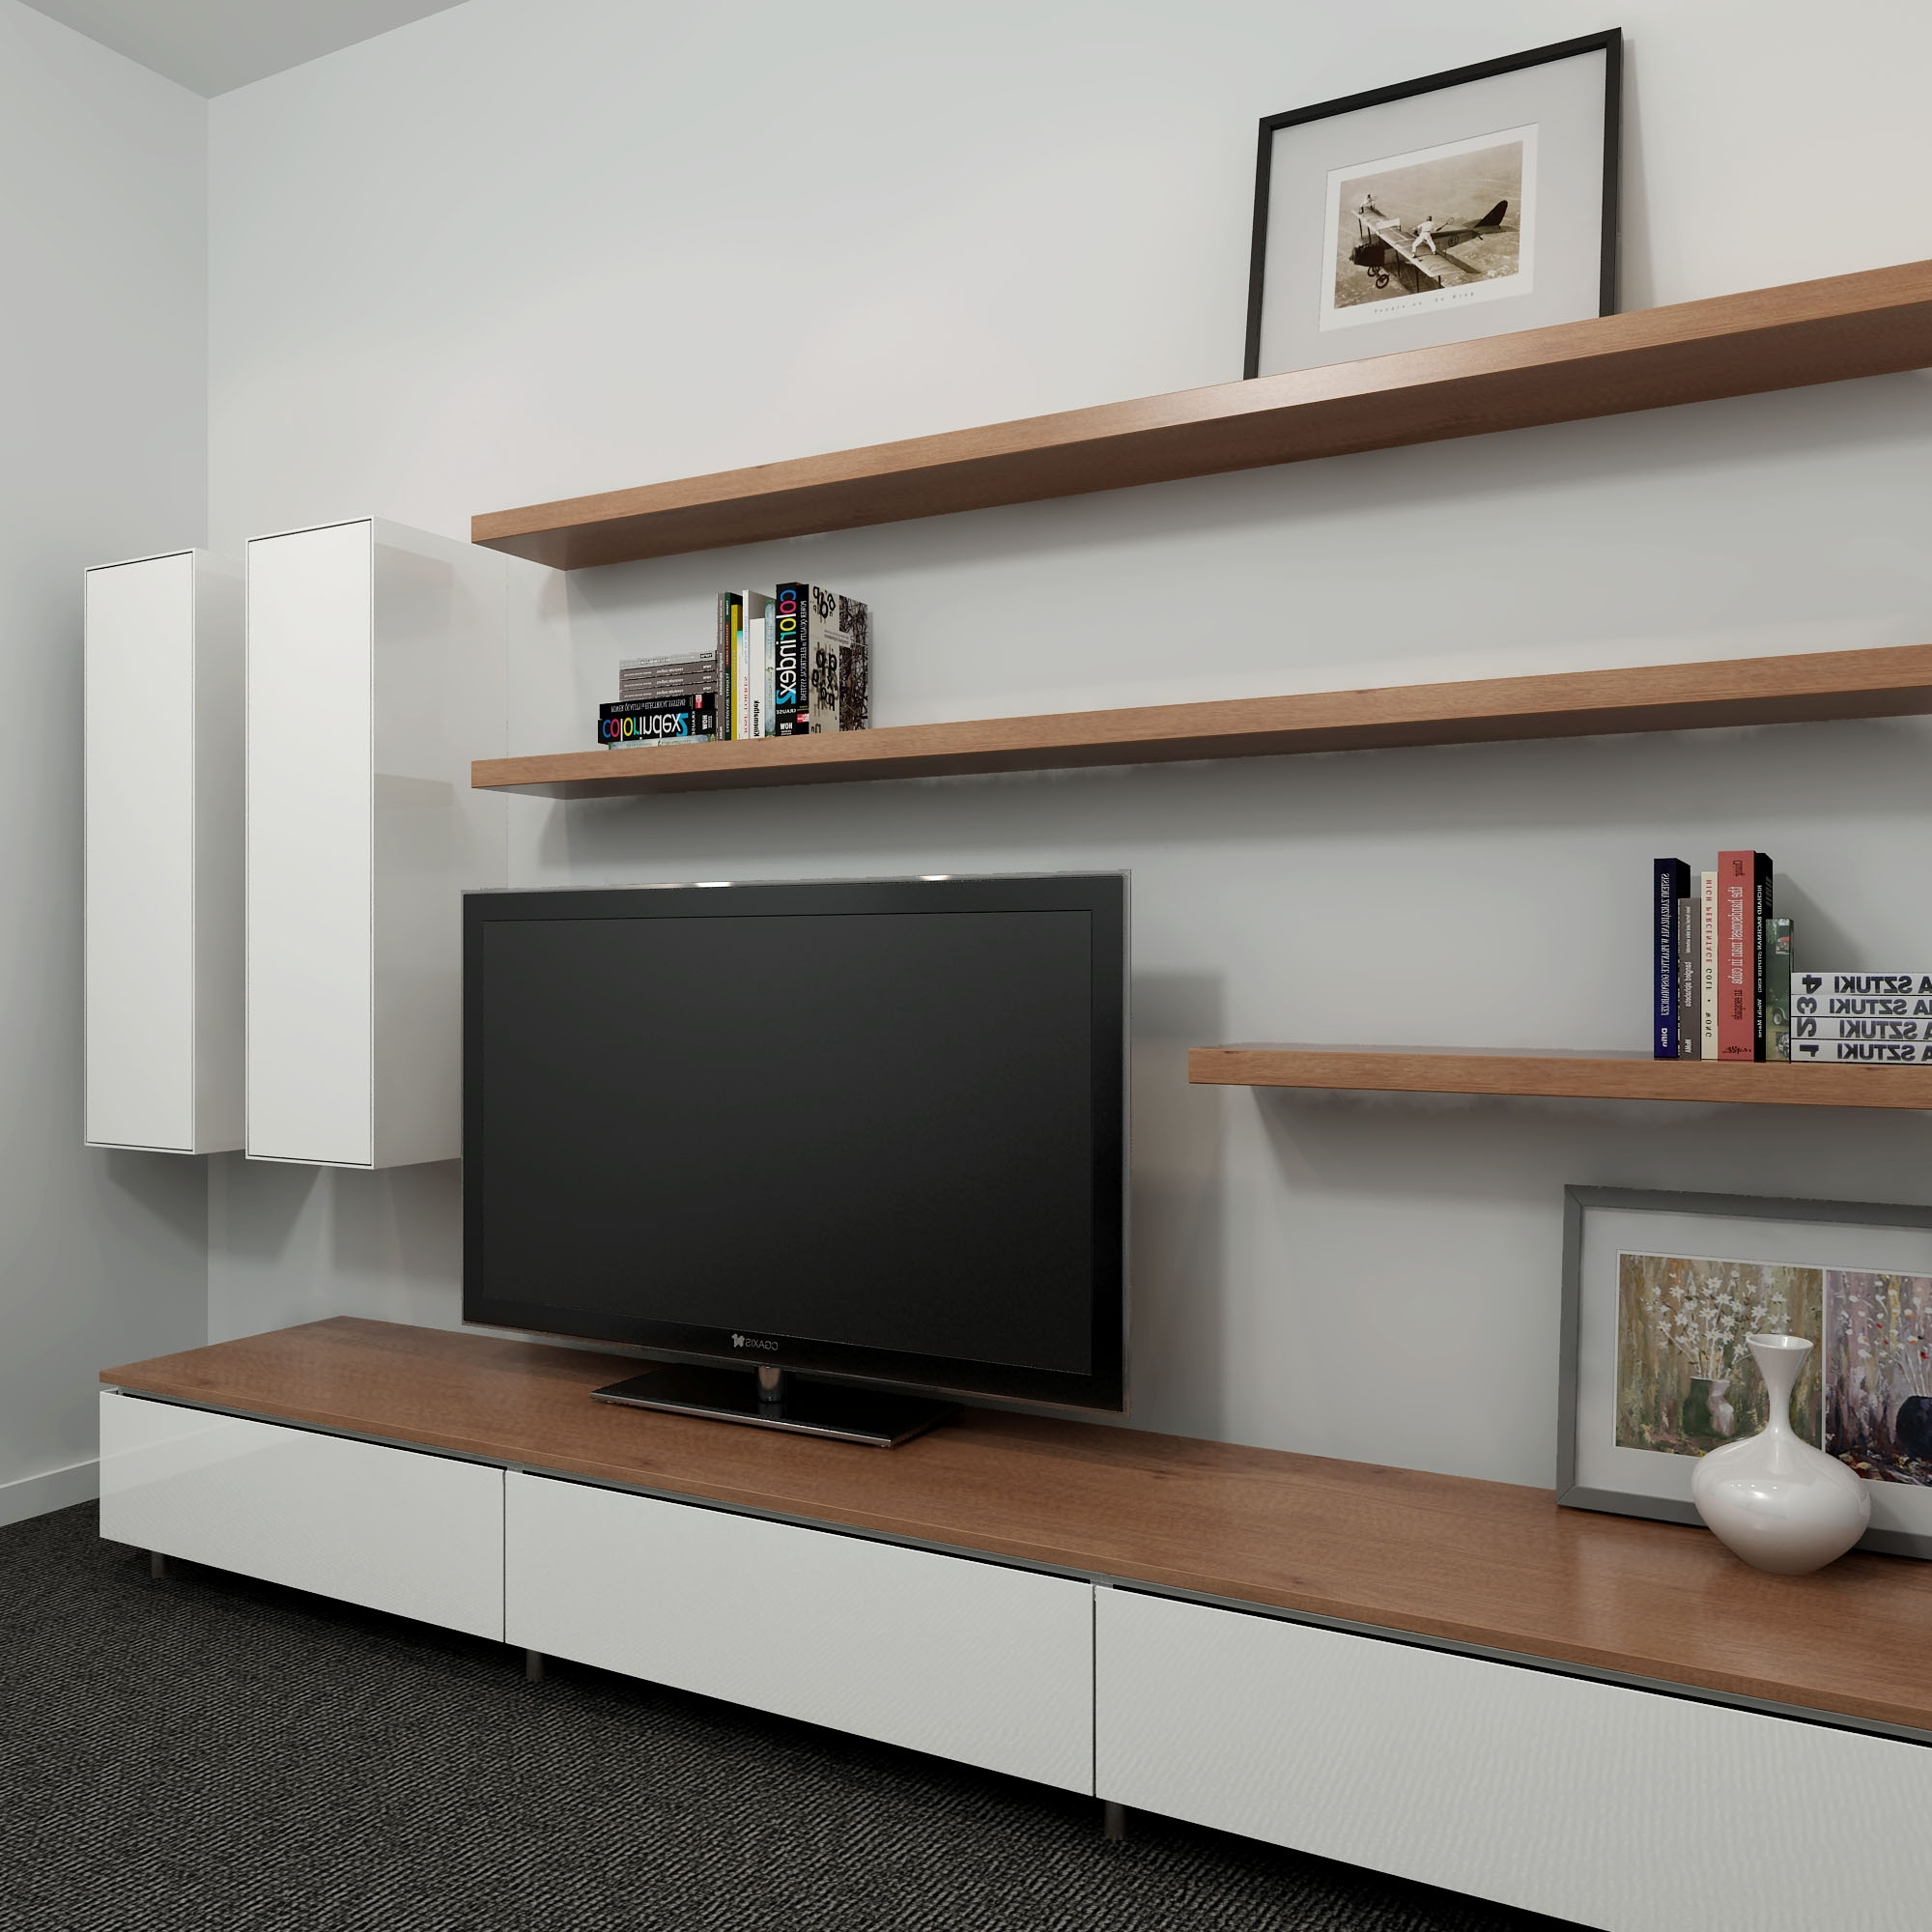 2017 Tv Bookshelves Unit With Entertainment Units Tv And Shelves On Pinterest ~ Idolza (View 6 of 15)